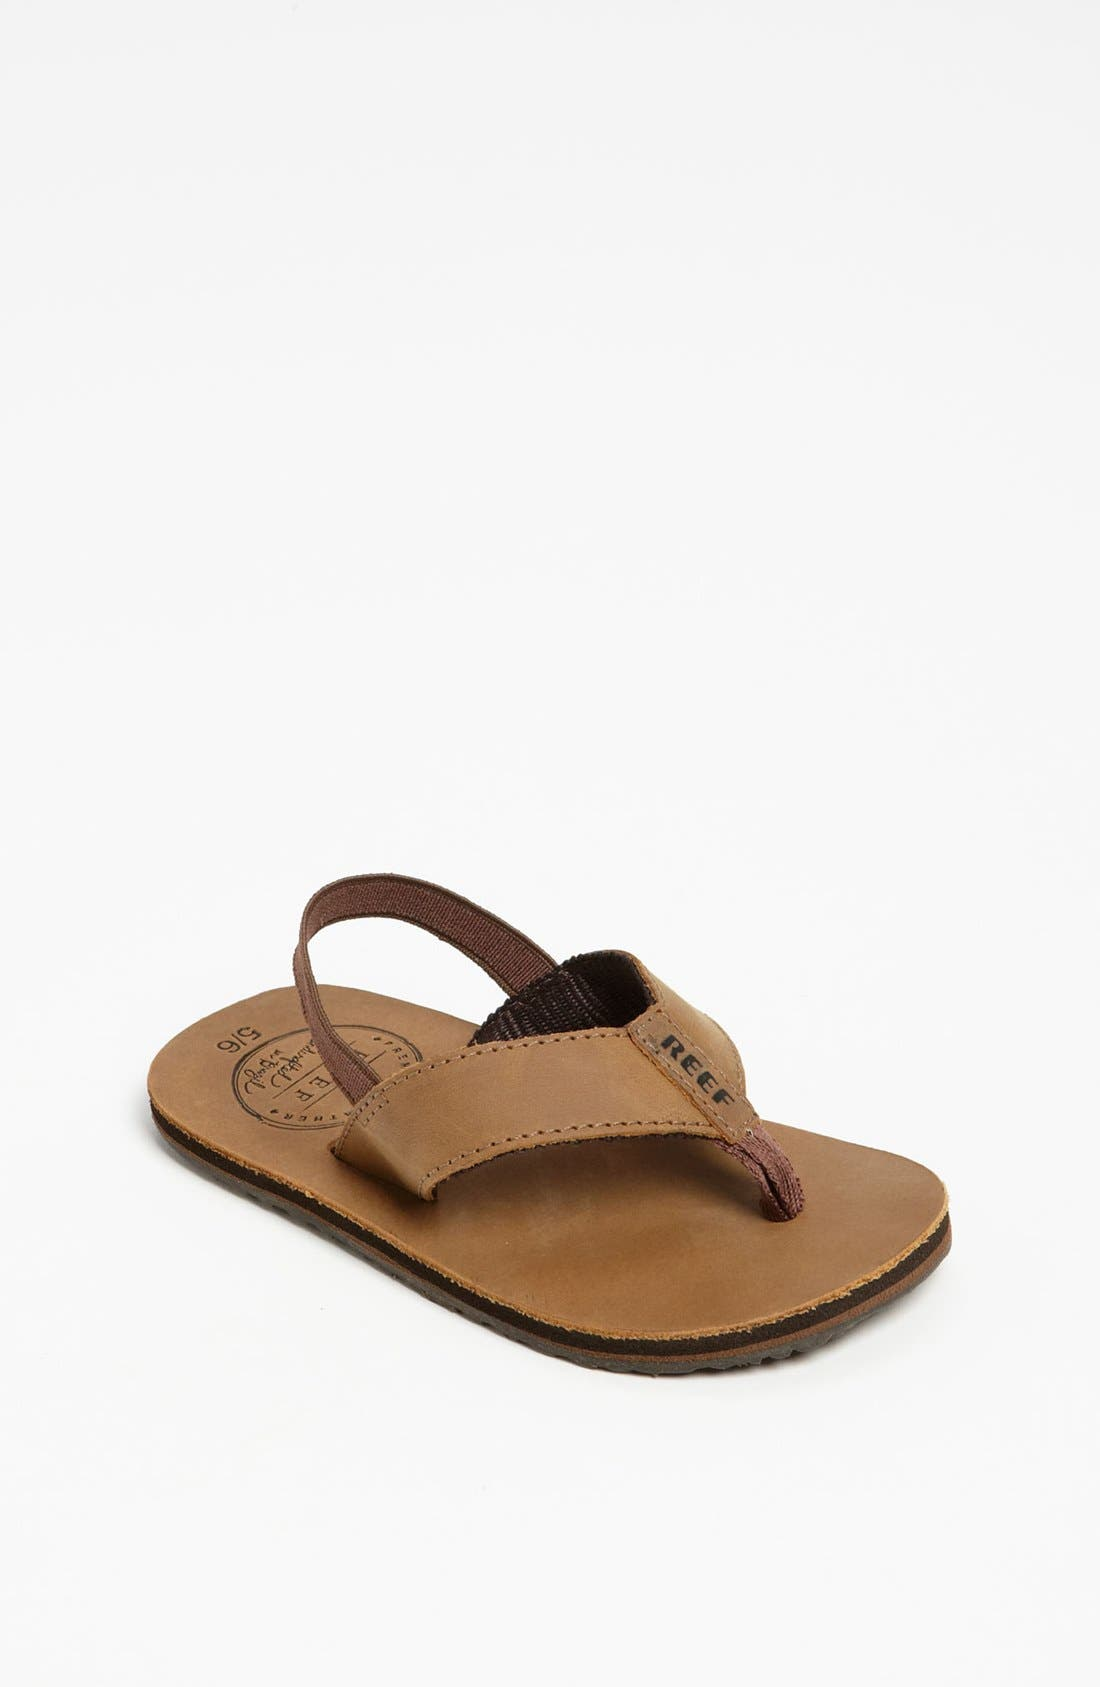 REEF Grom Leather Flip-Flop